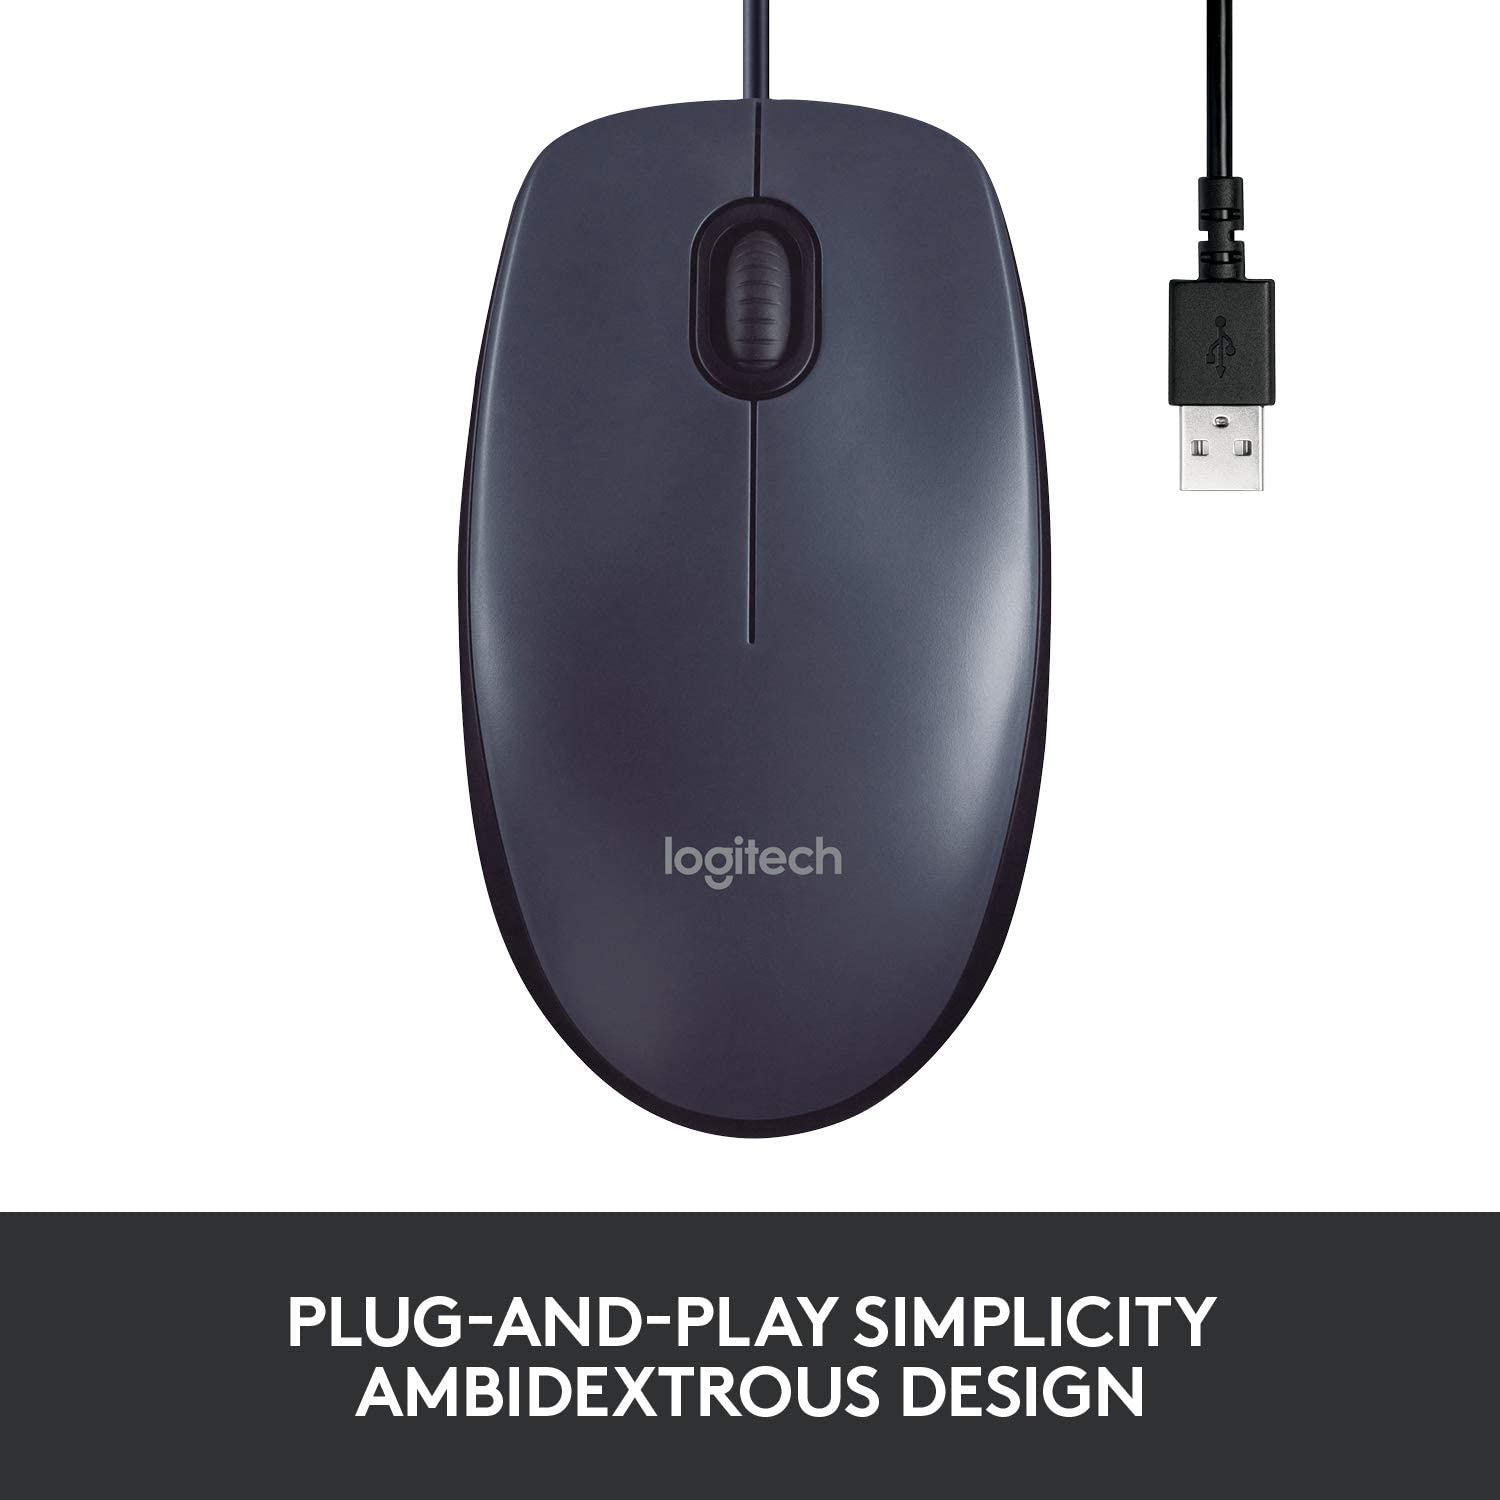 USB Wired Mouse (B100)